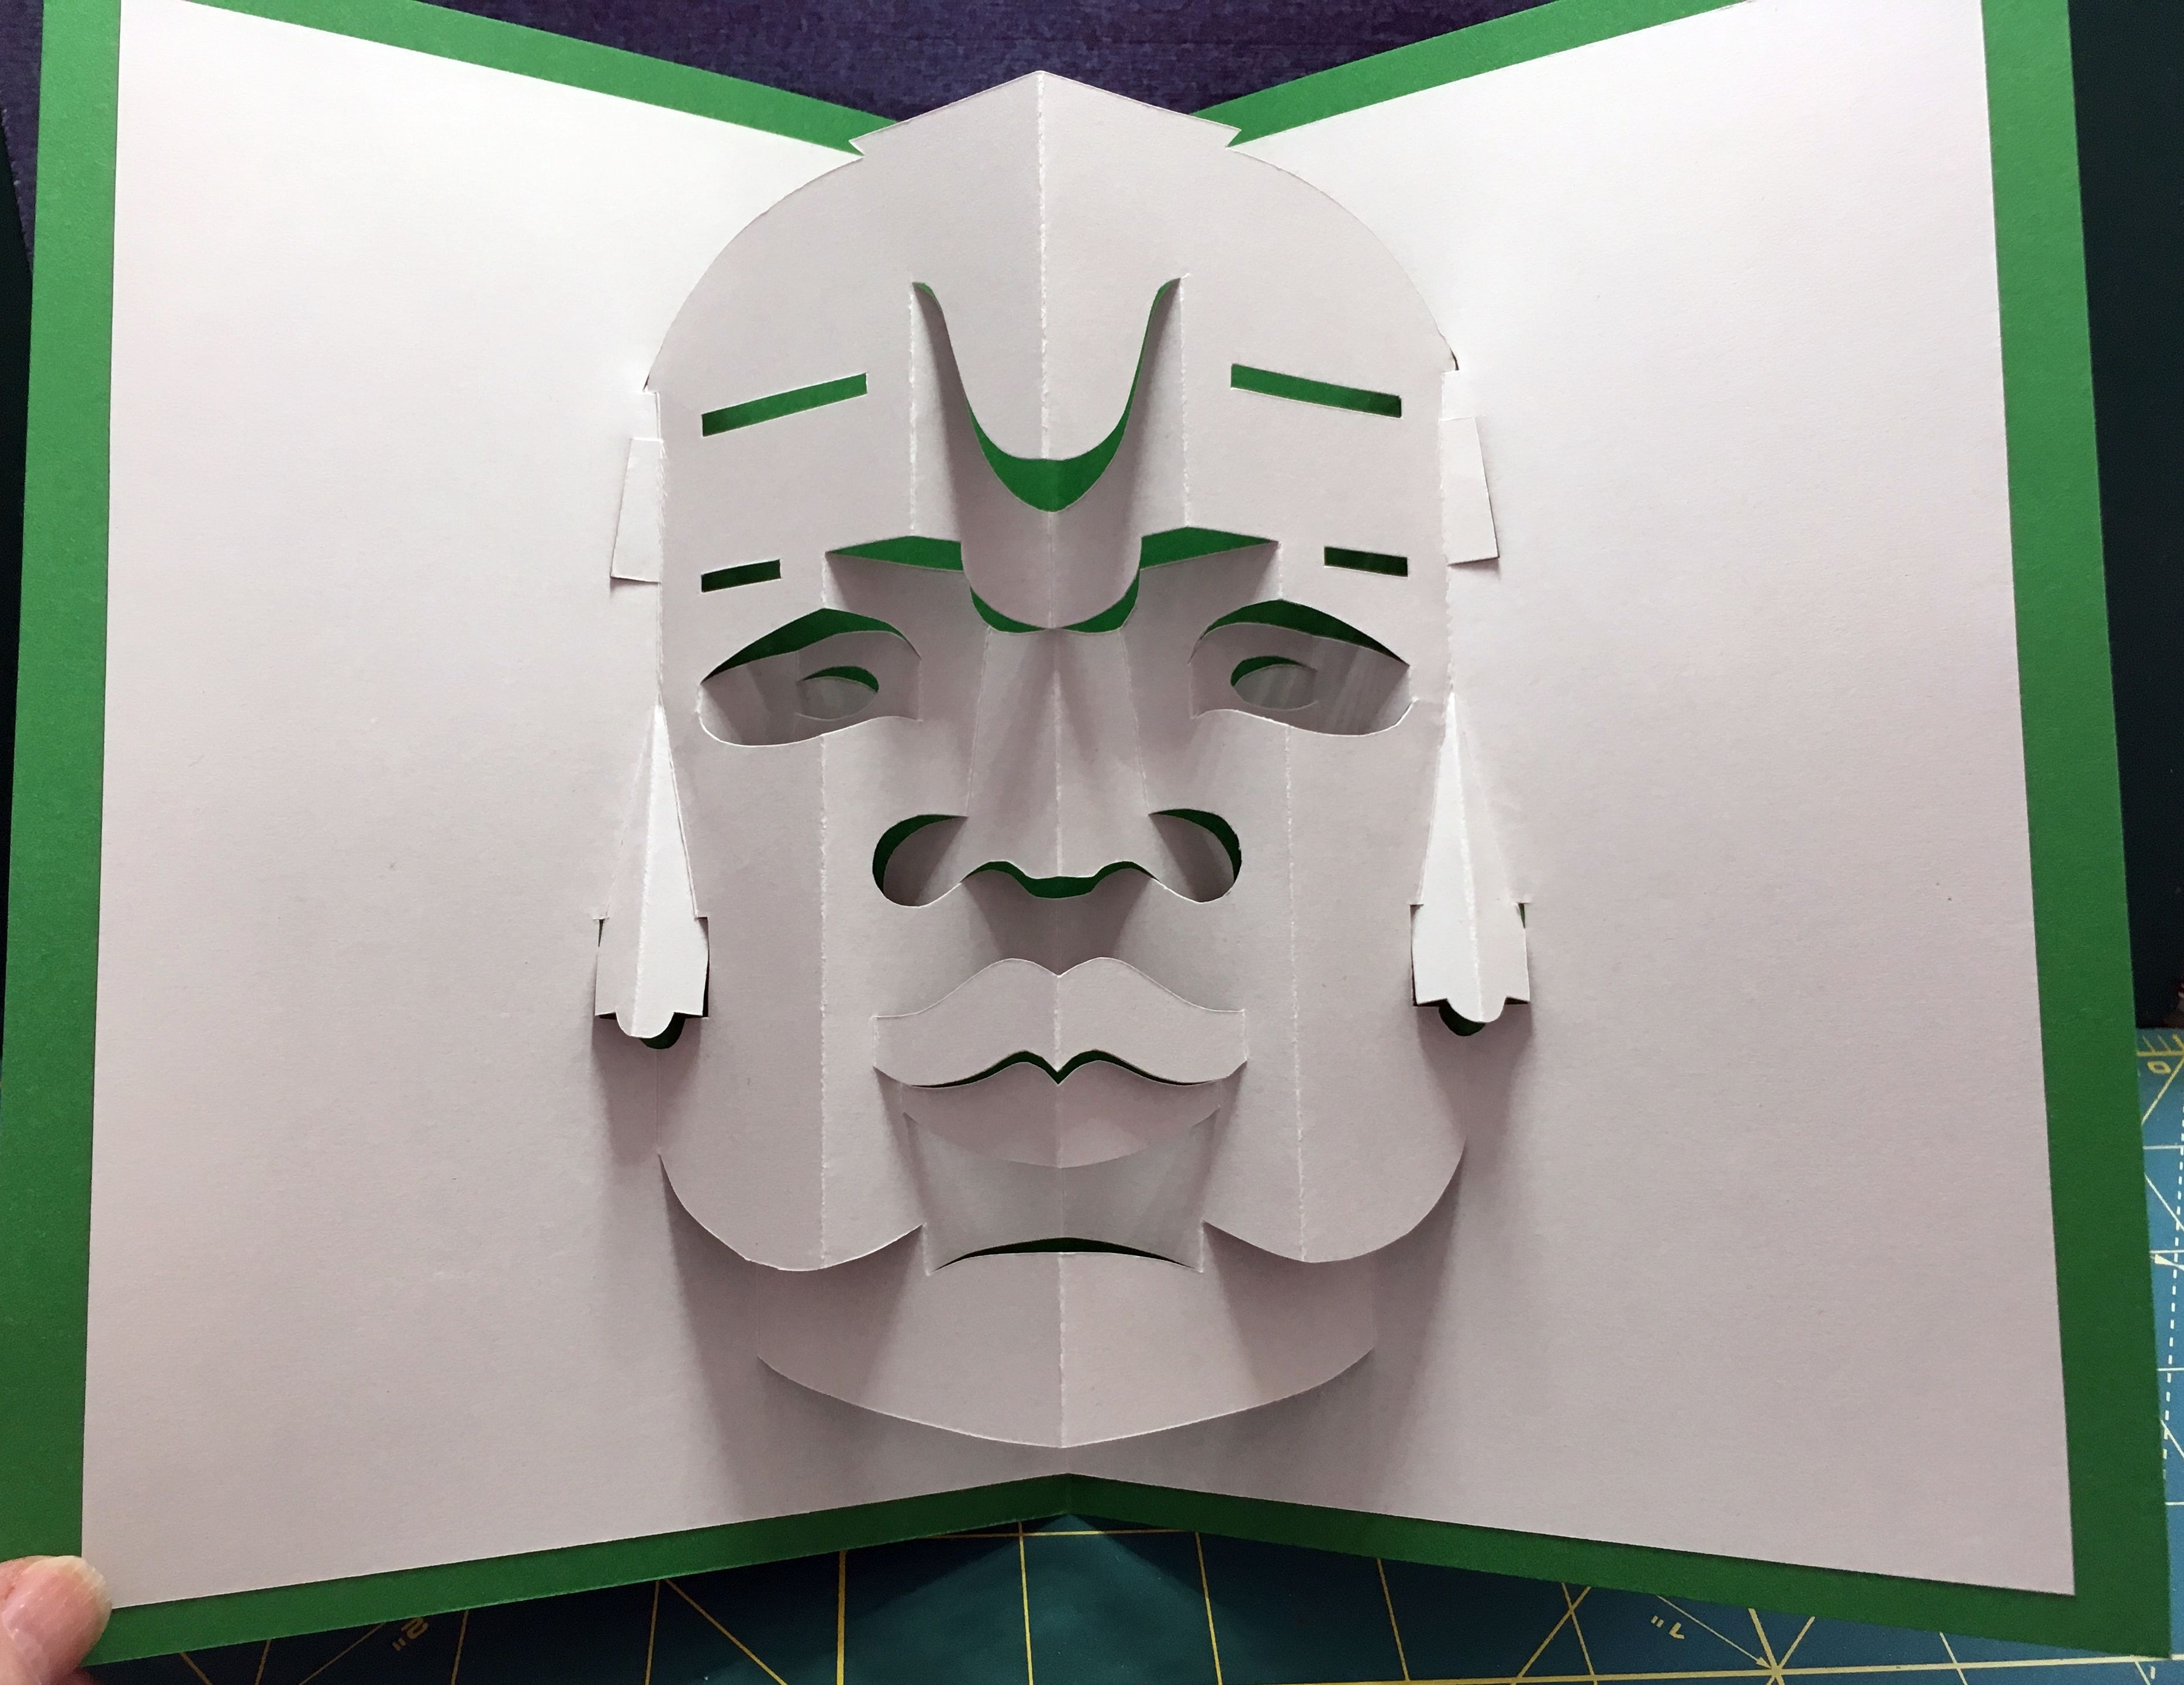 Olmec Head Sculpture Pop Up Card Template From Origami Architecture Famous Sites Pop Up Card Templates Origami Architecture Sculpture